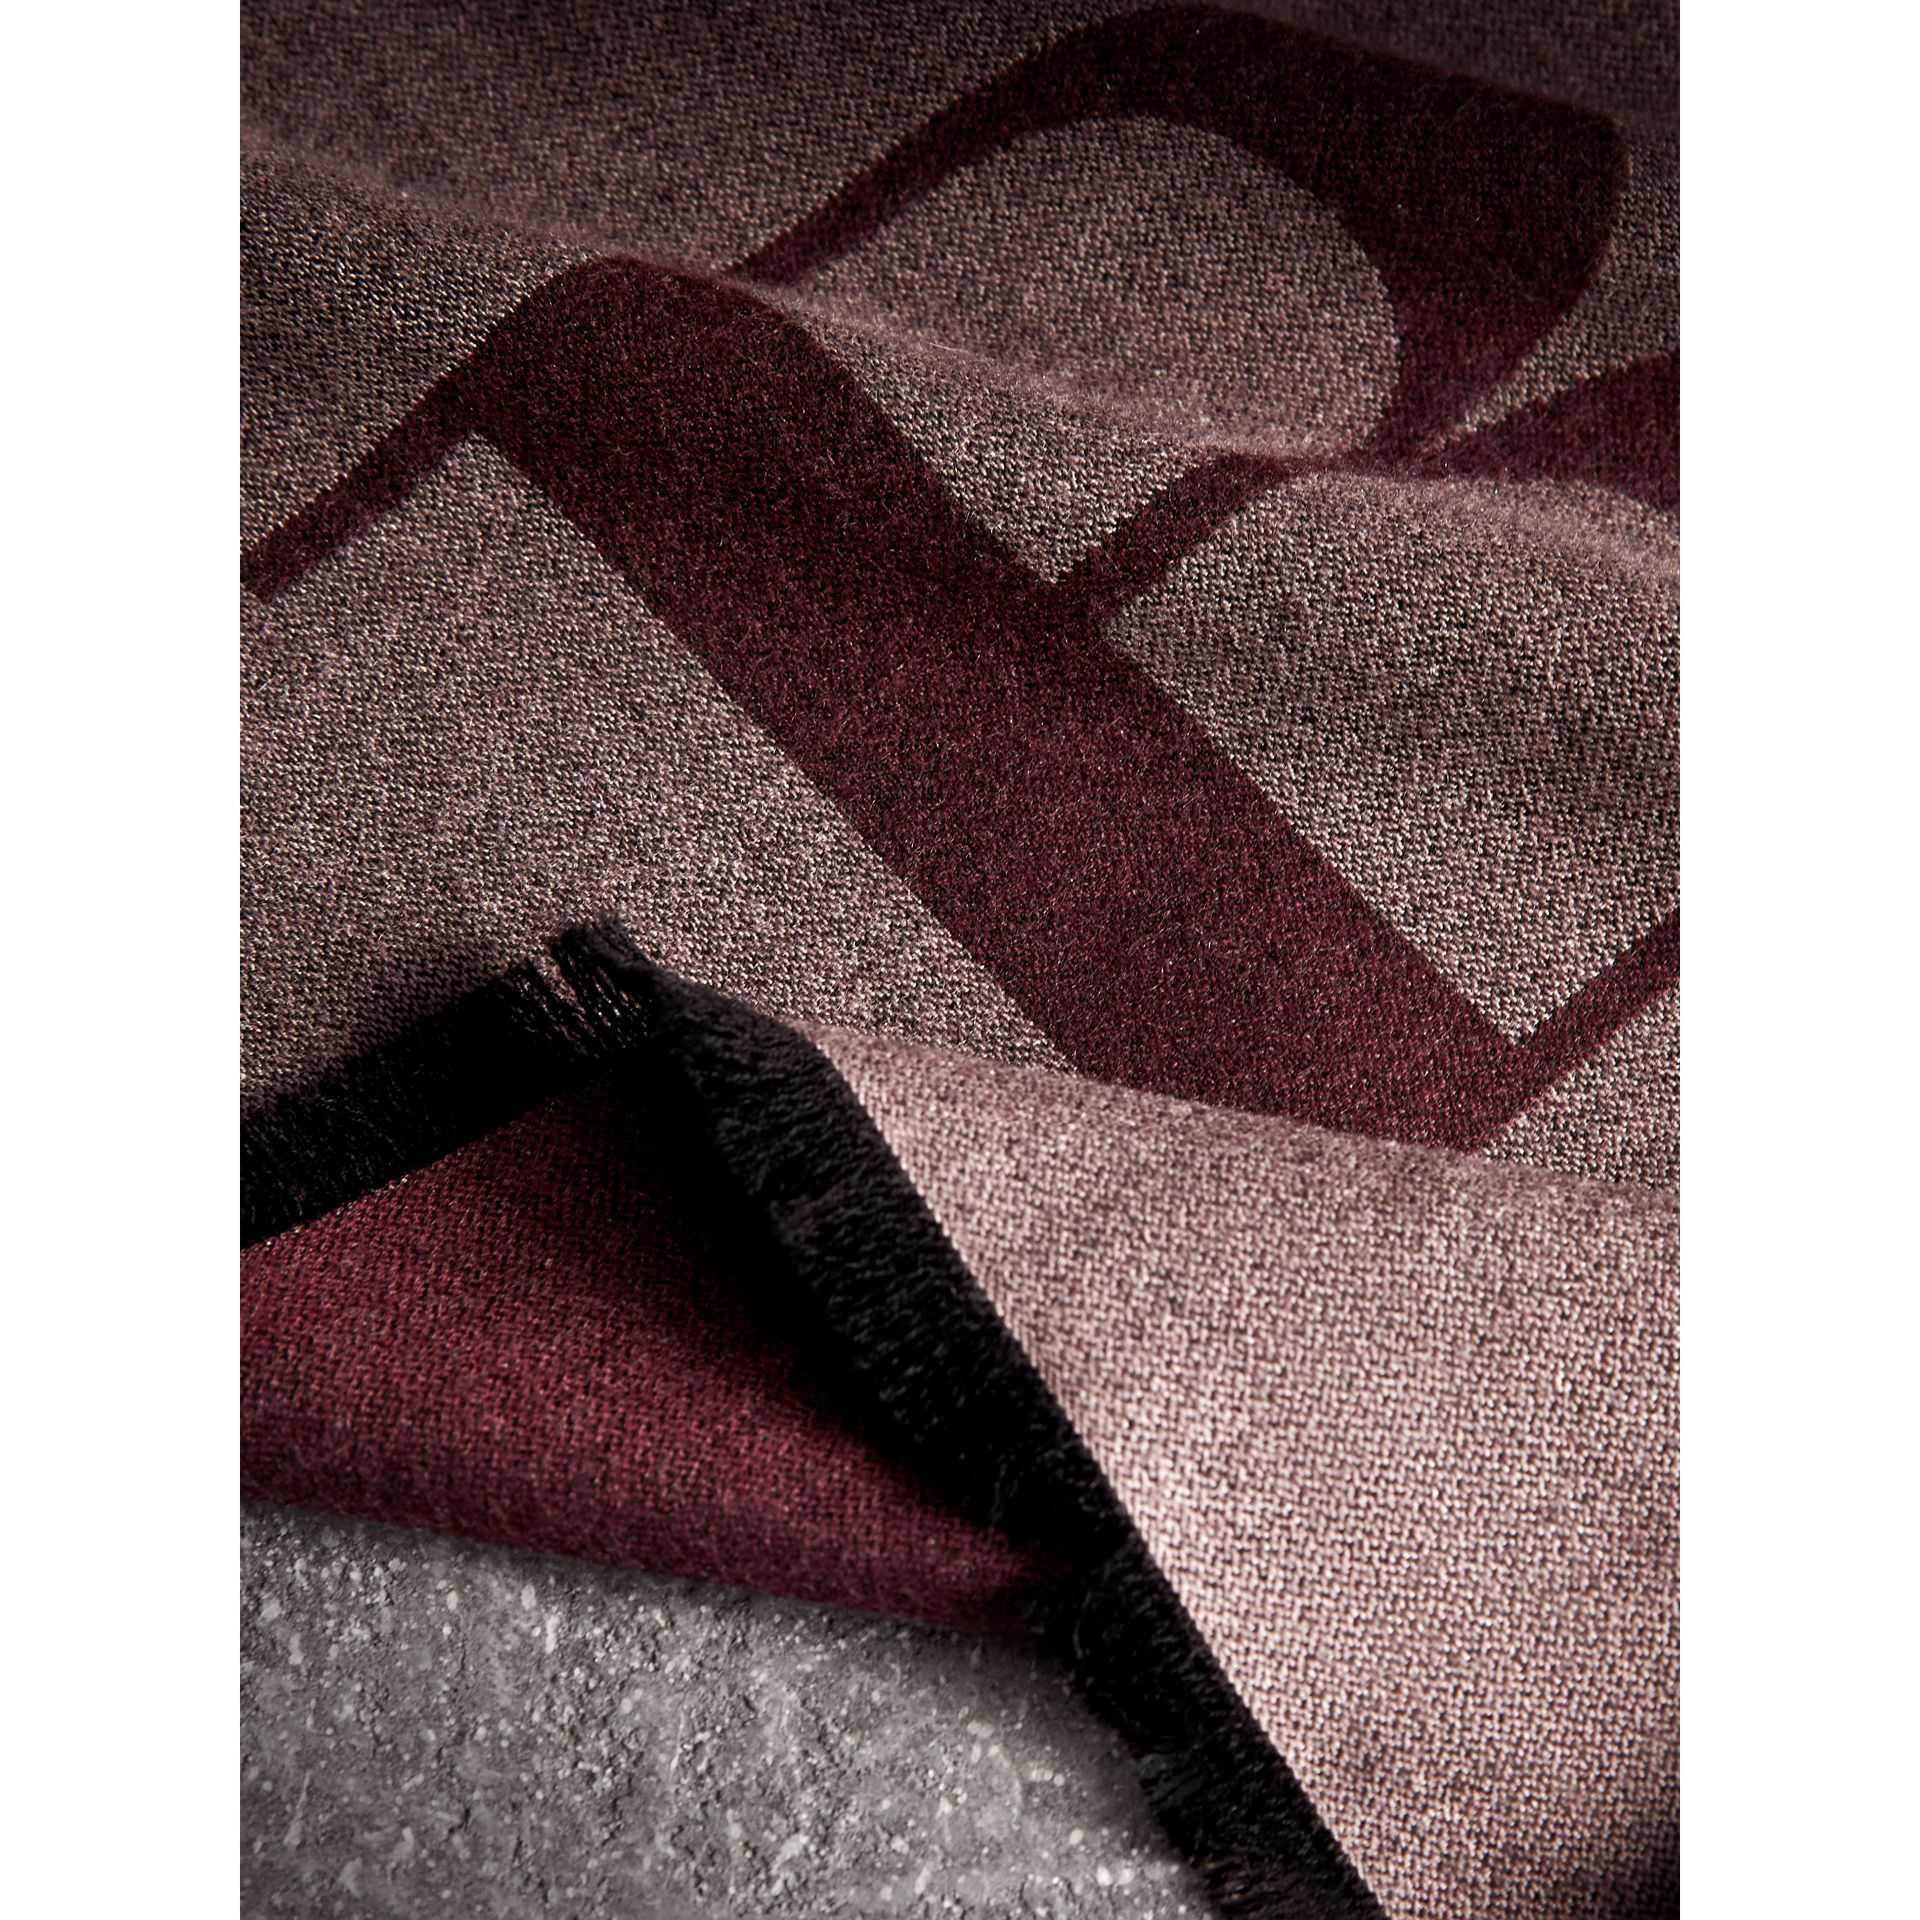 Graphic Print Motif Cashmere Wrap in Ash Rose - Women | Burberry - gallery image 2